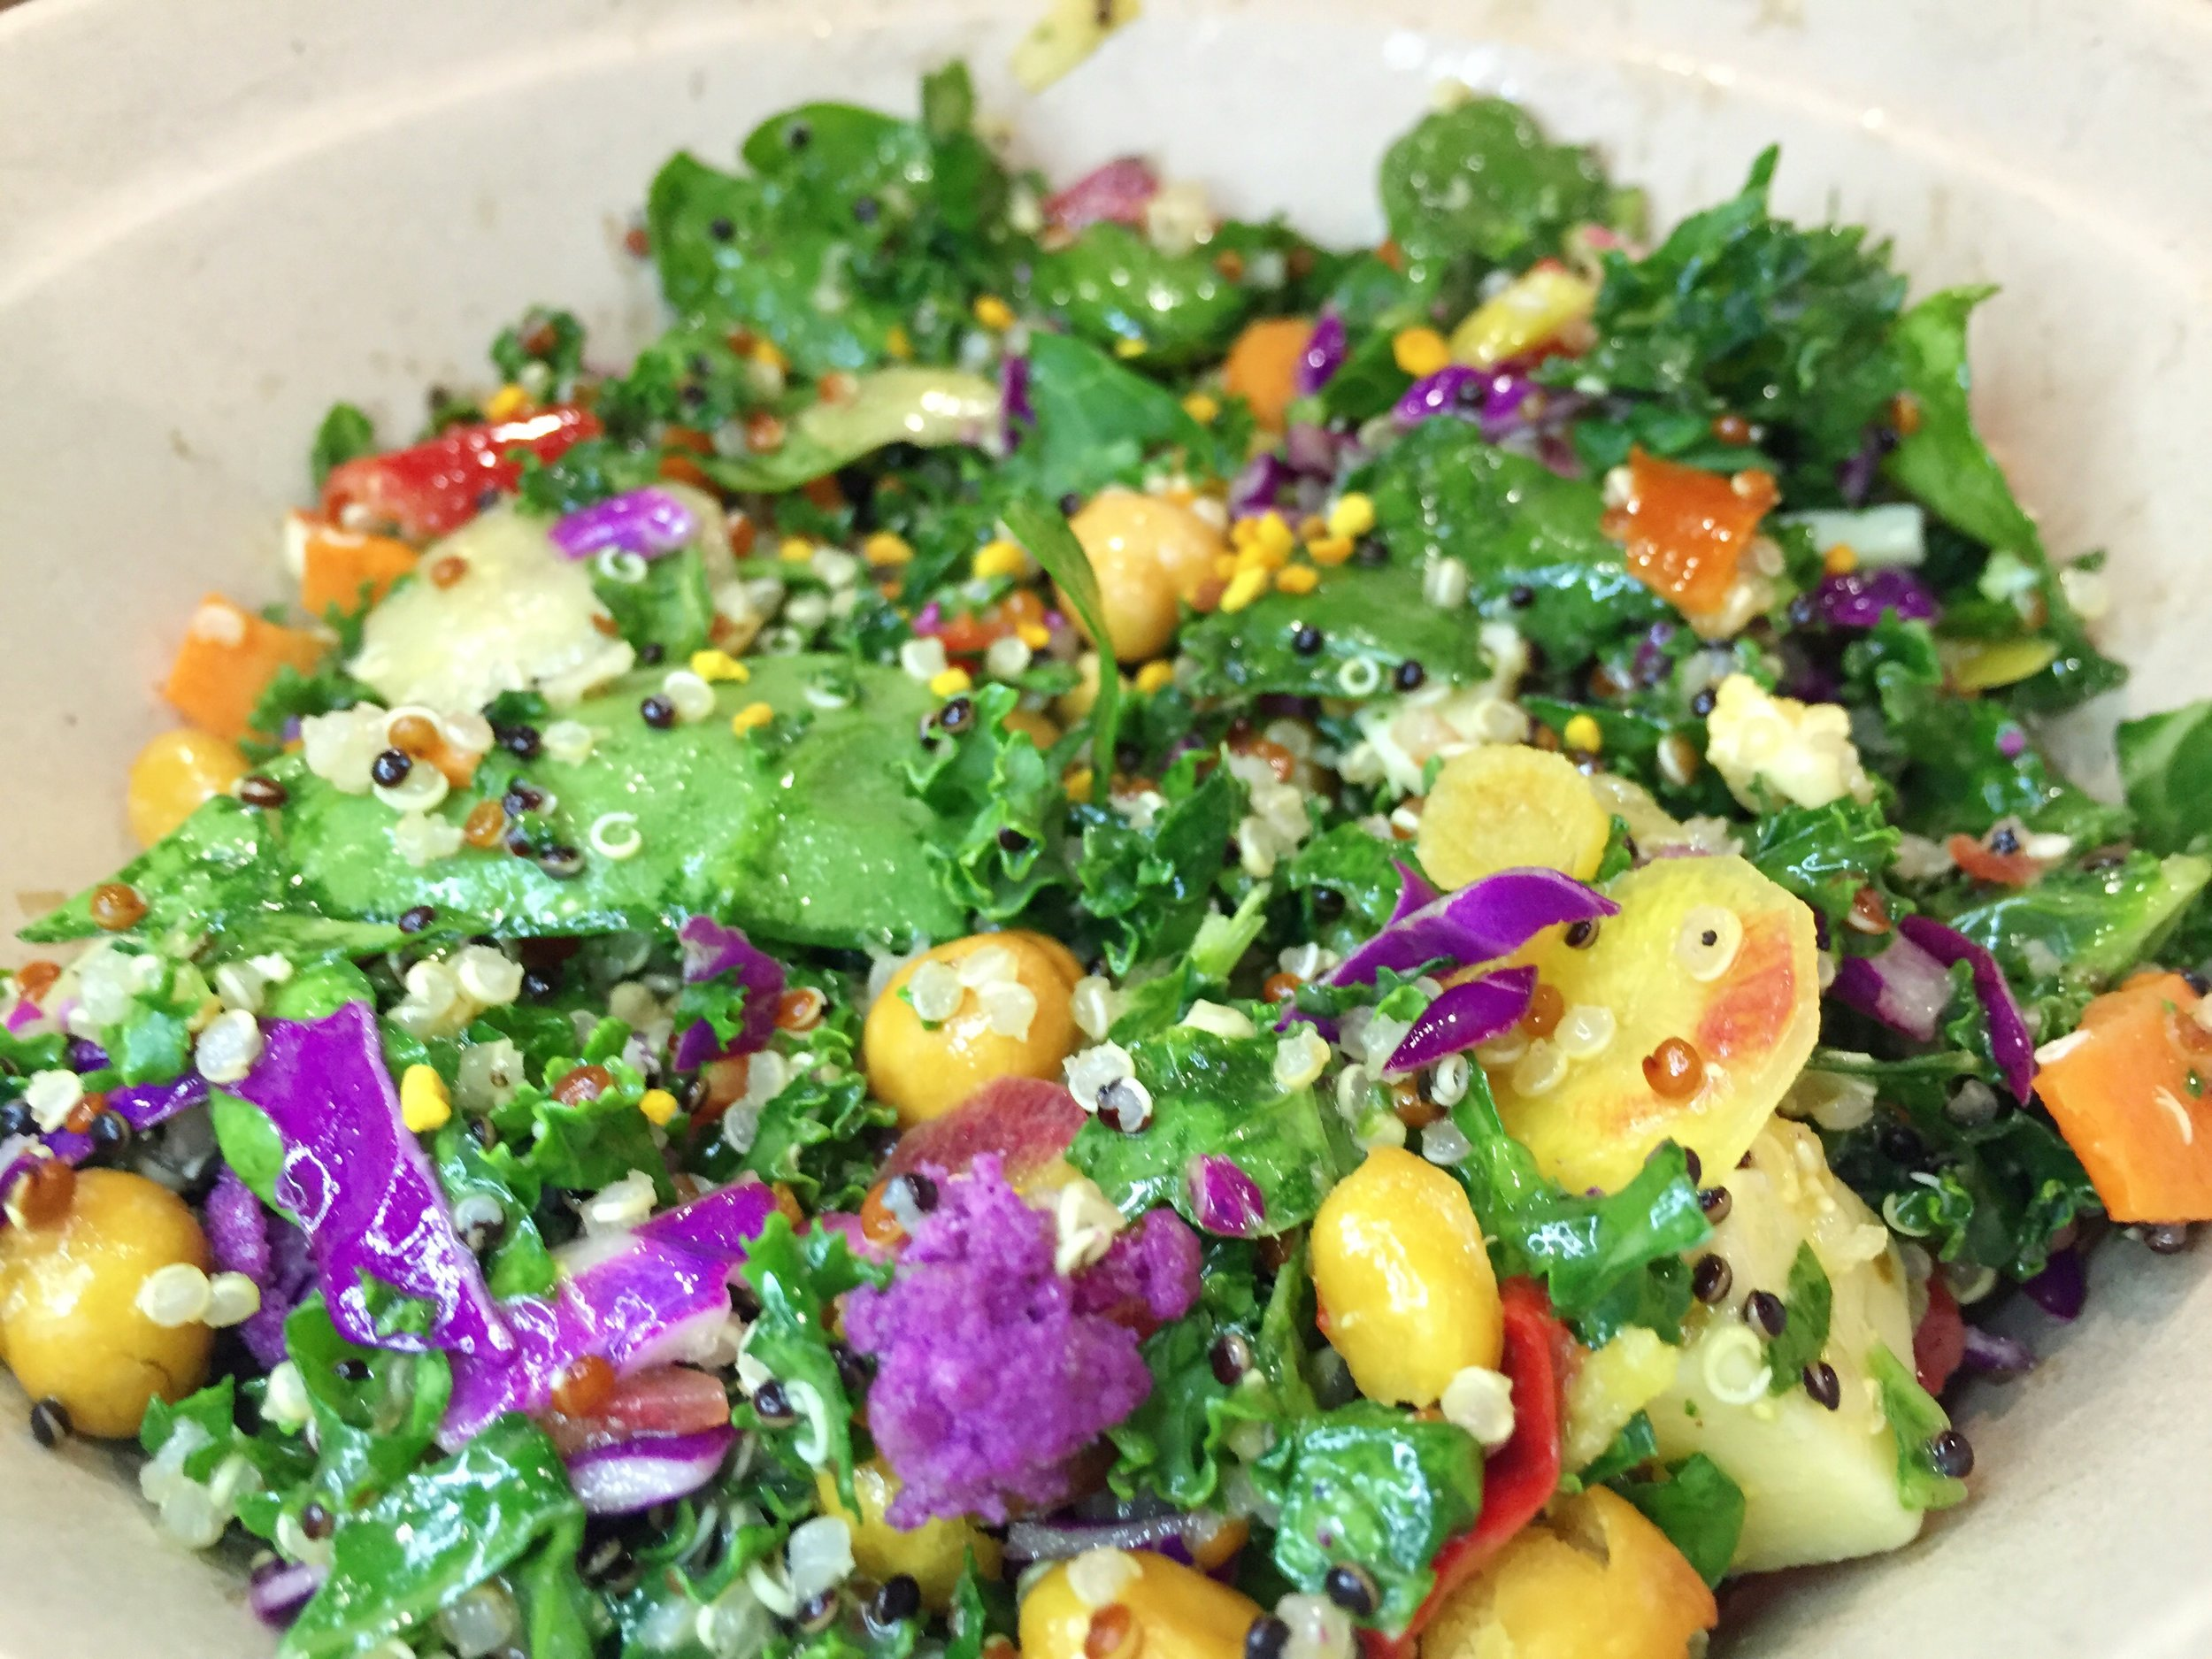 Beekeeper's Quinoa Bowl | Tri-colored quinoa, aged Tillamook cheddar, roasted chickpeas, Mama Lil's spicy peppers, rainbow cauliflower, kale, broccoleaf, purple cabbage. Tossed in Wildflower Honey Dijon dressing and topped with bee pollen.